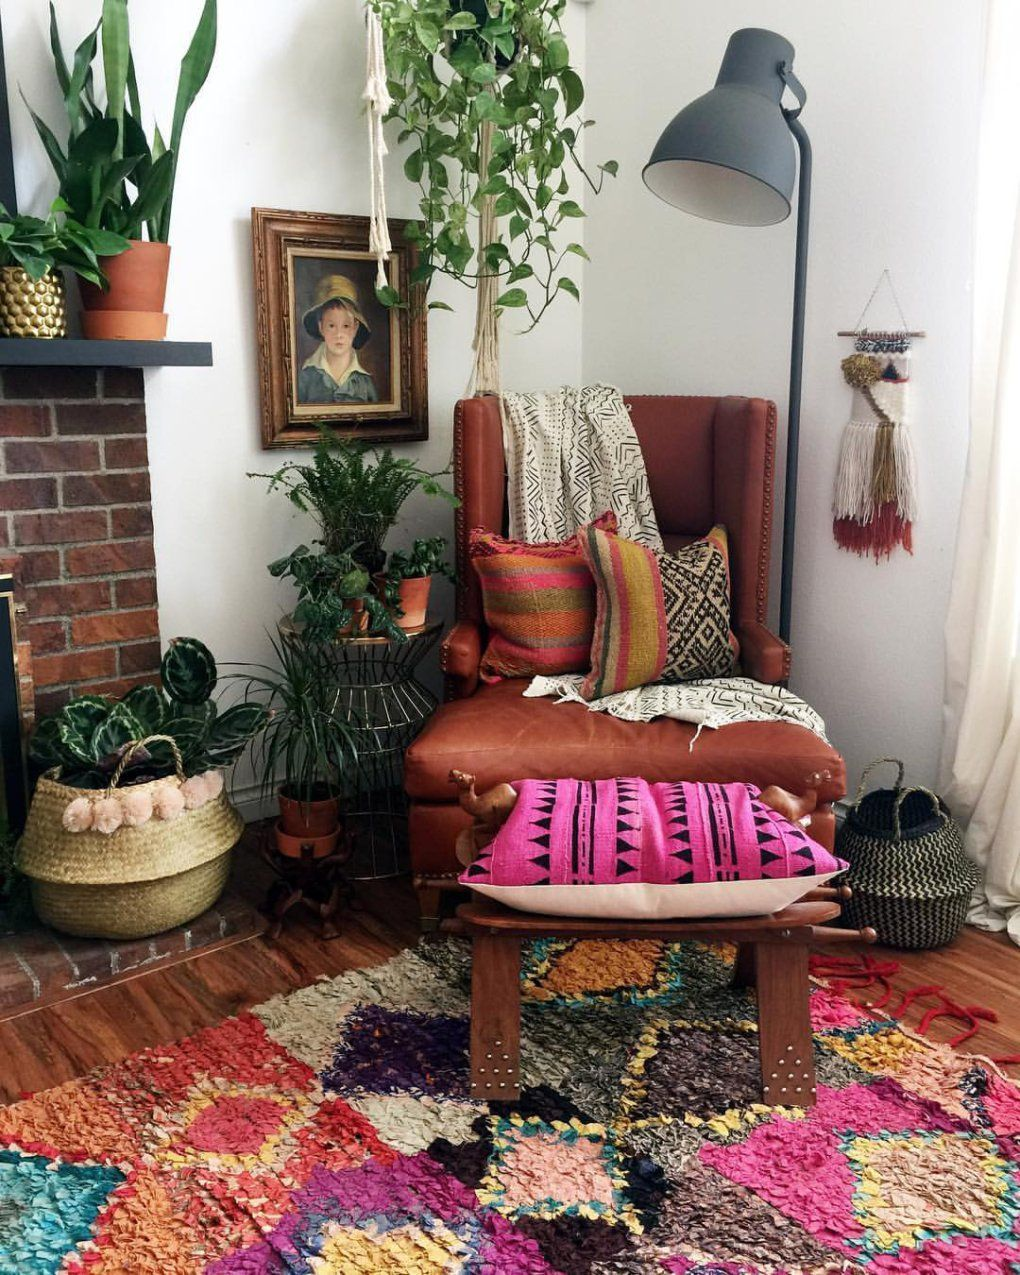 Your inspiration for a modern bohemian home by DK Renewal